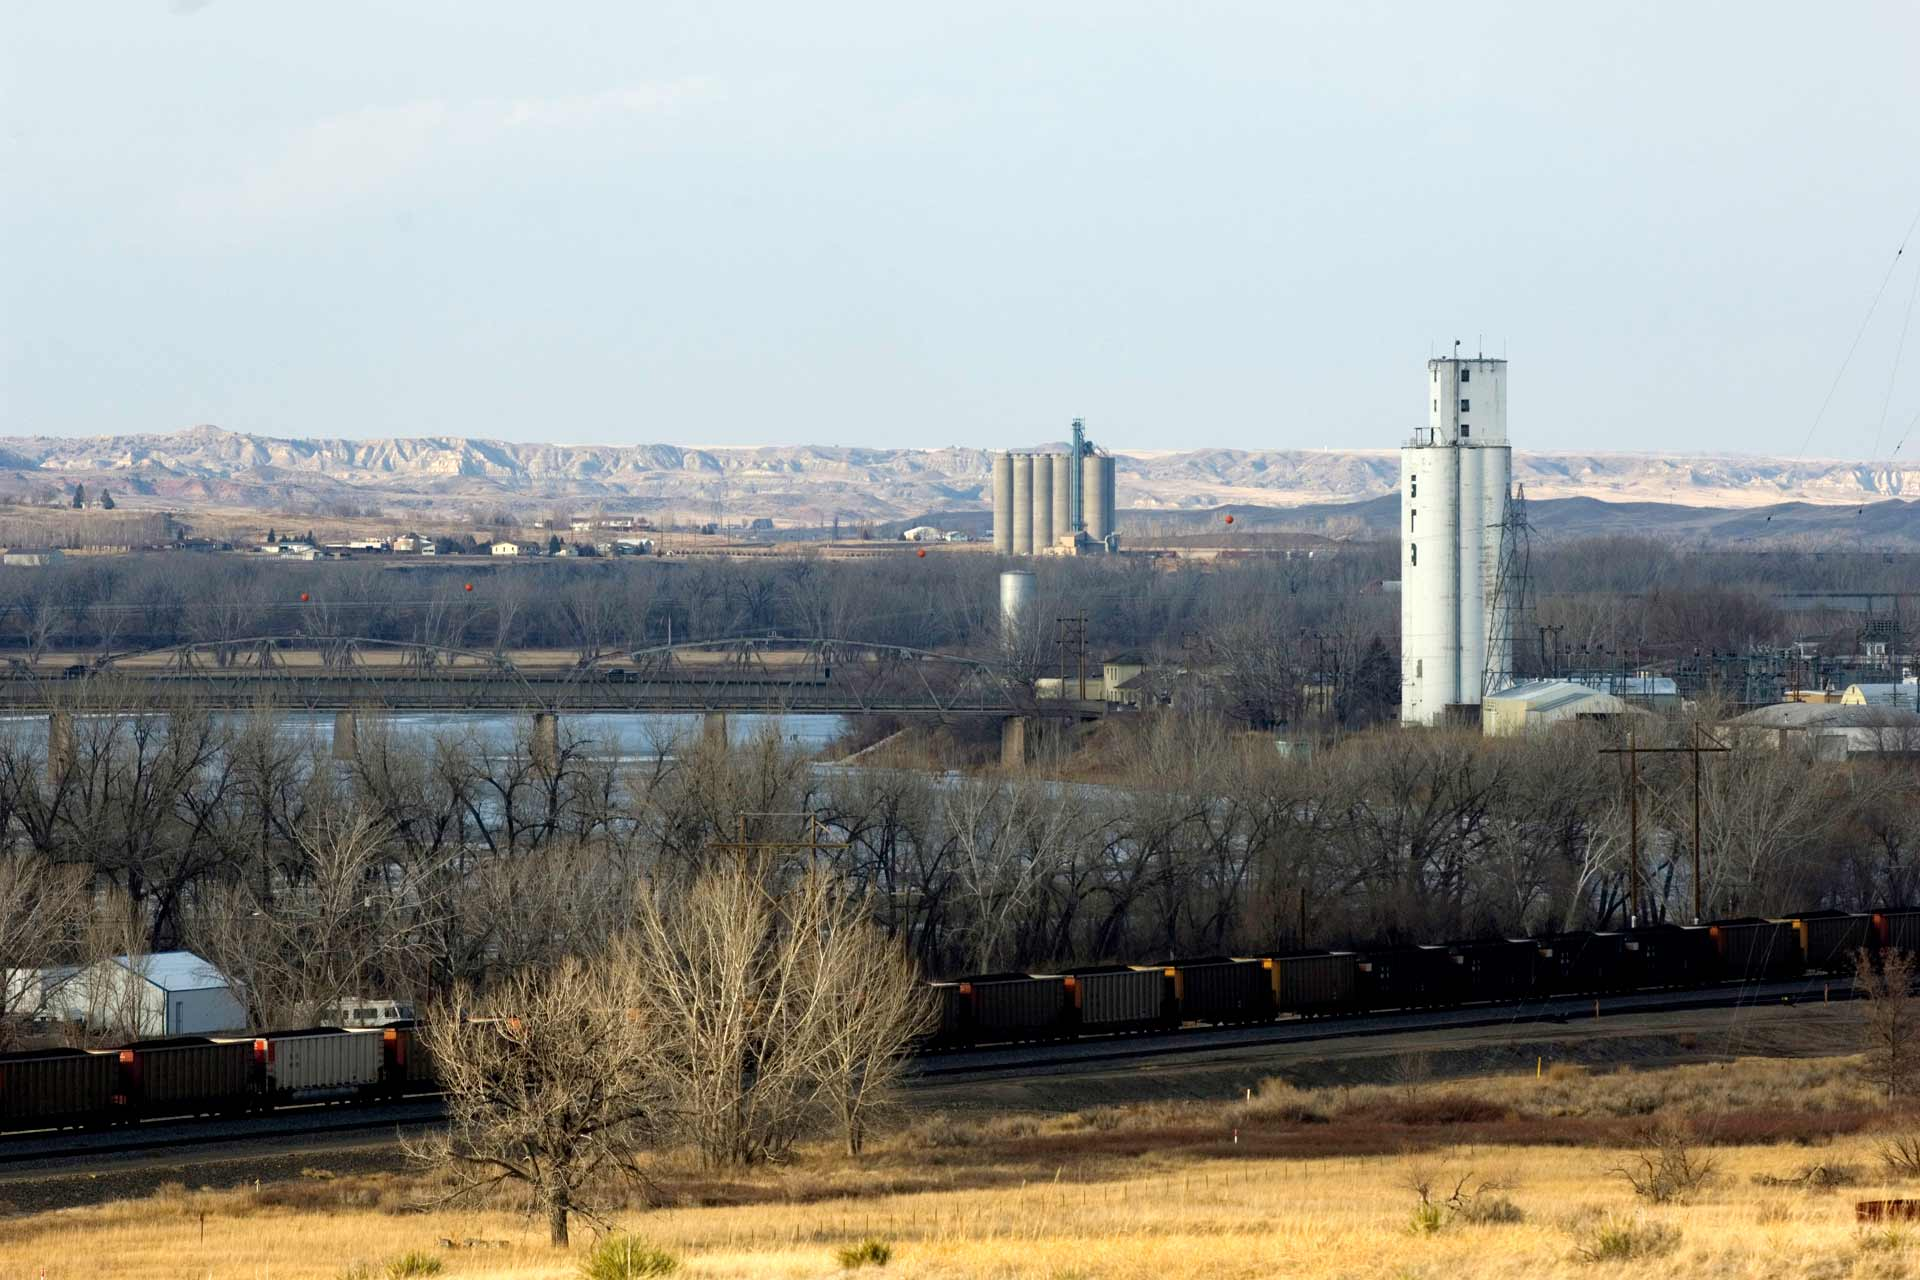 View of Glendive, MT and mountains beyond